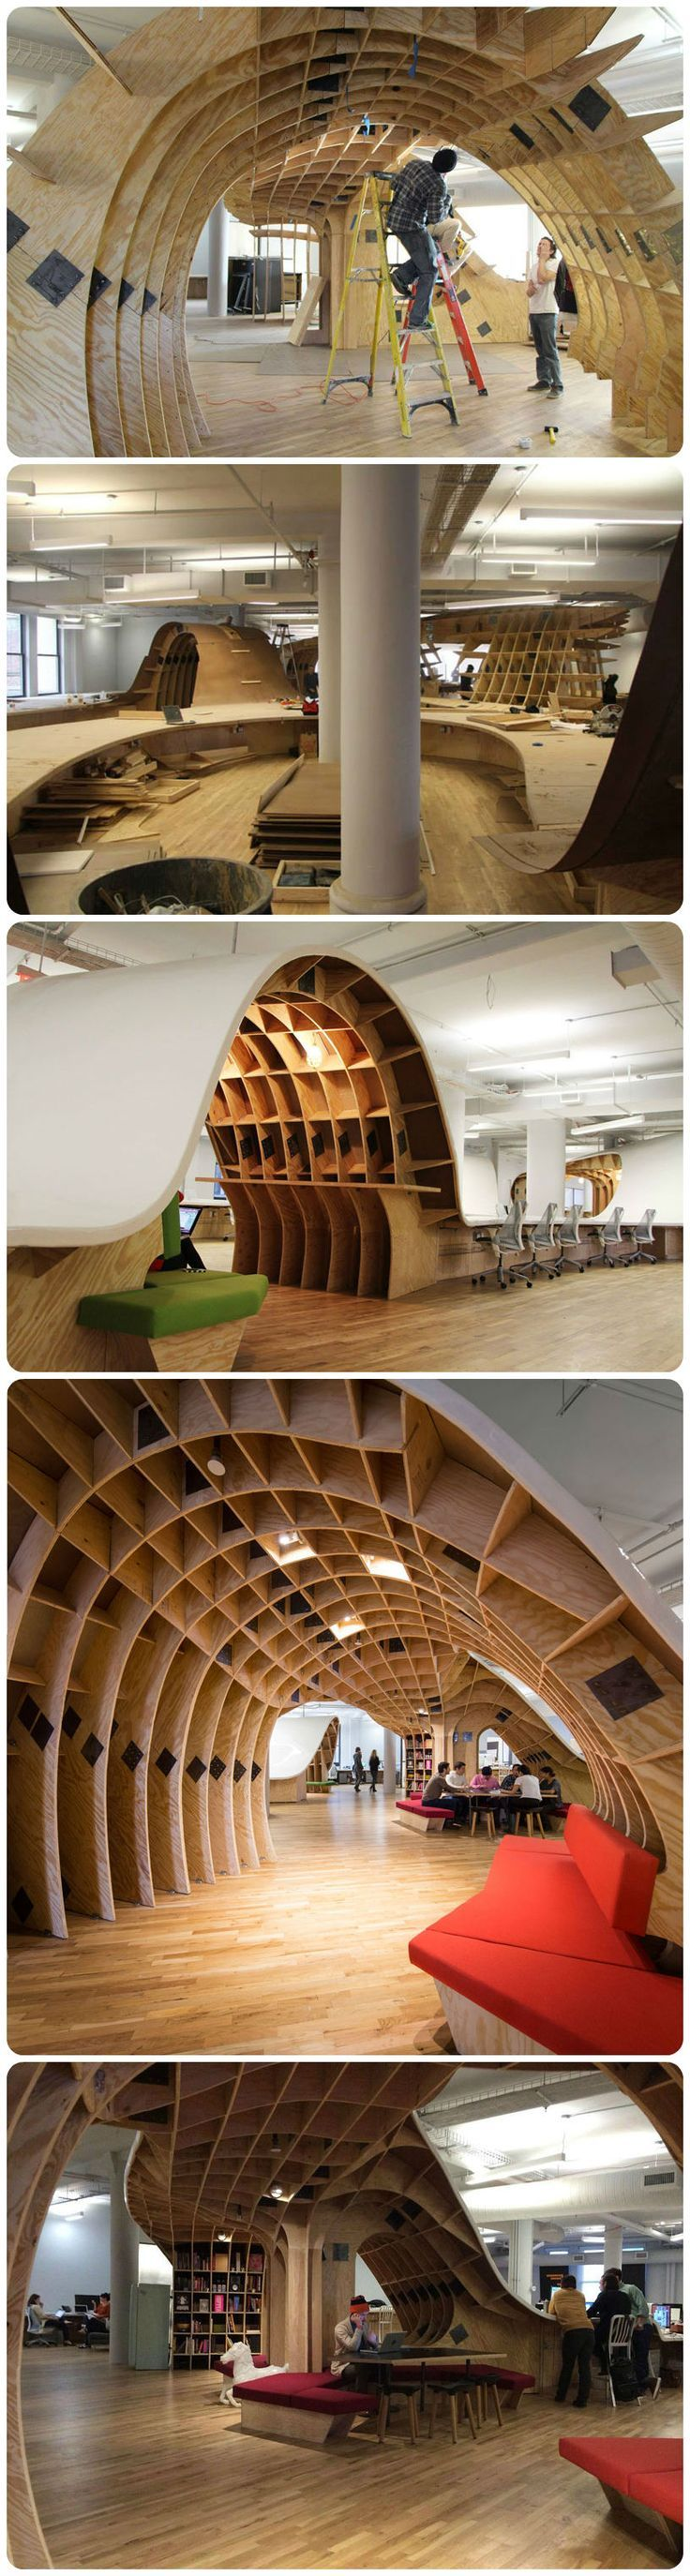 futuristic office ditches cubicles super. Futuristic Office Ditches Cubicles For A Super Desk That Seats 125 Employees - TechEBlog | Architecture Pinterest Barbarian Group, And Desks F